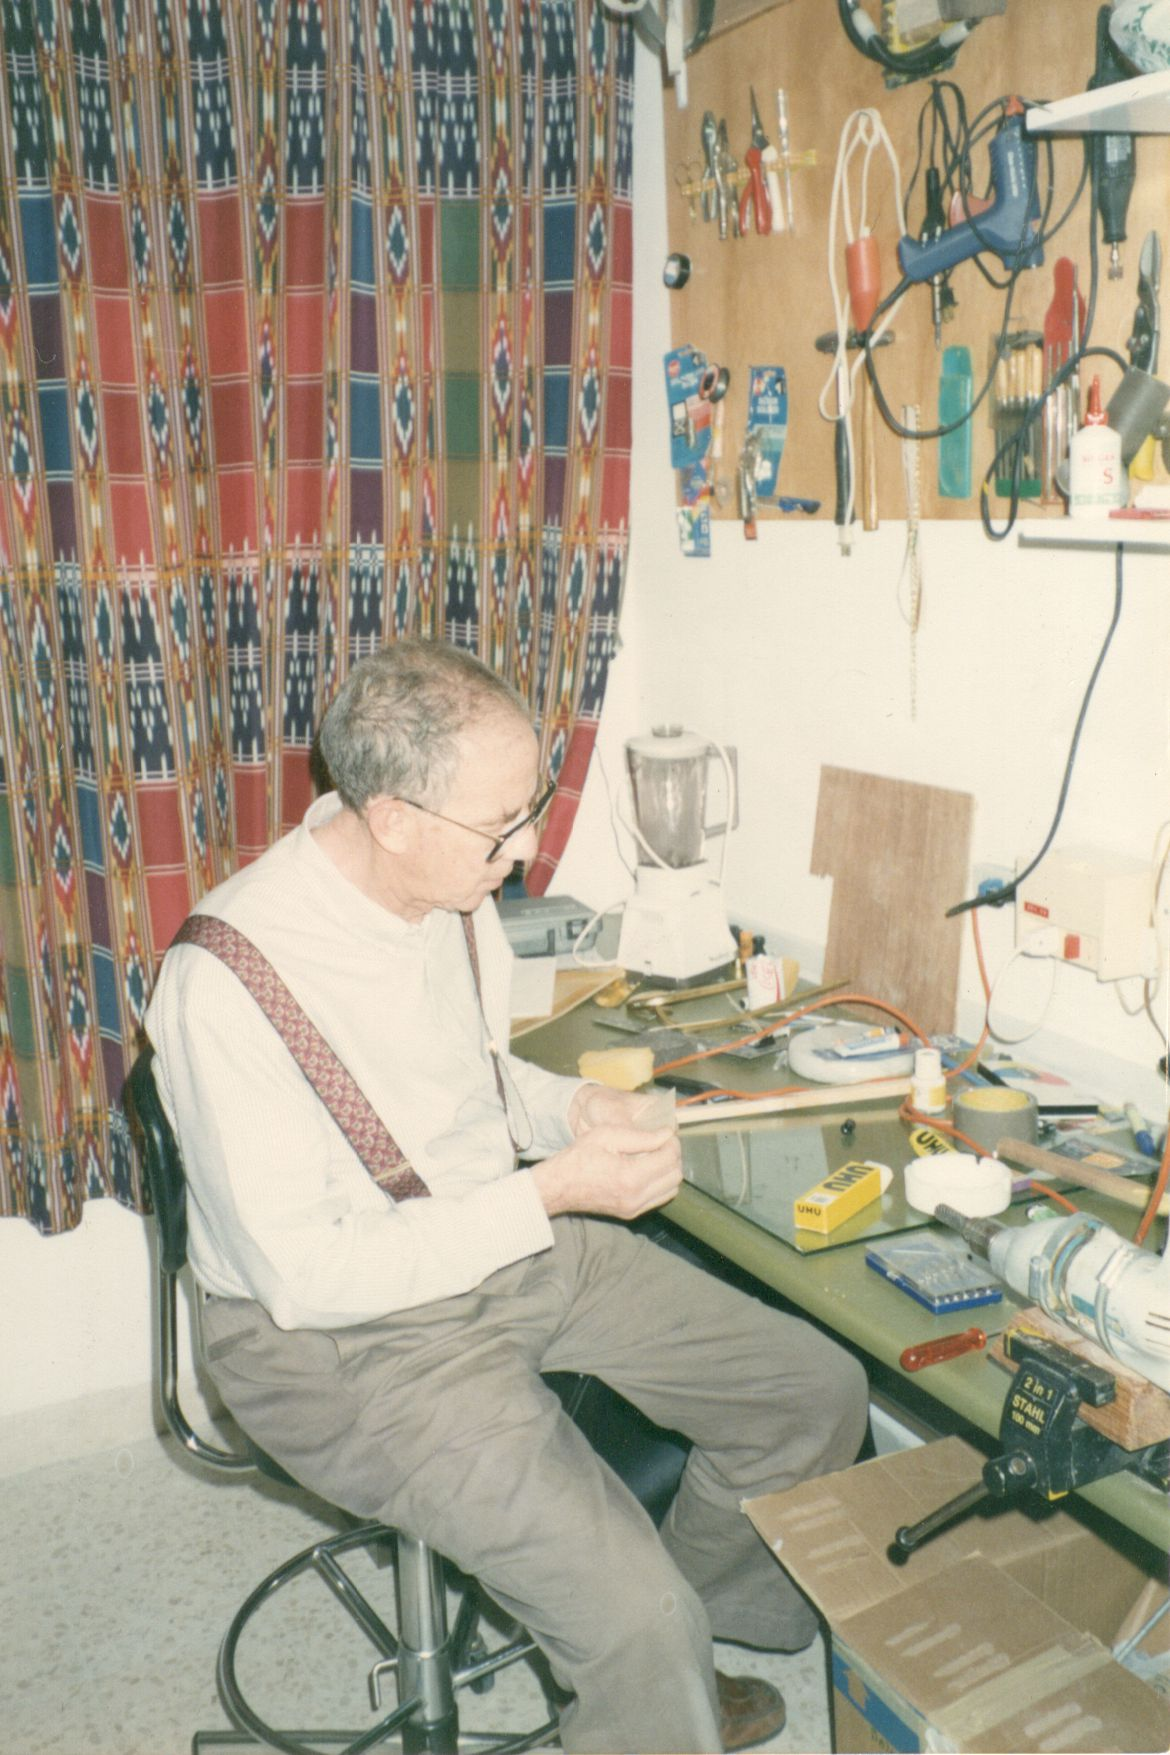 Usama tinkering in his workshop